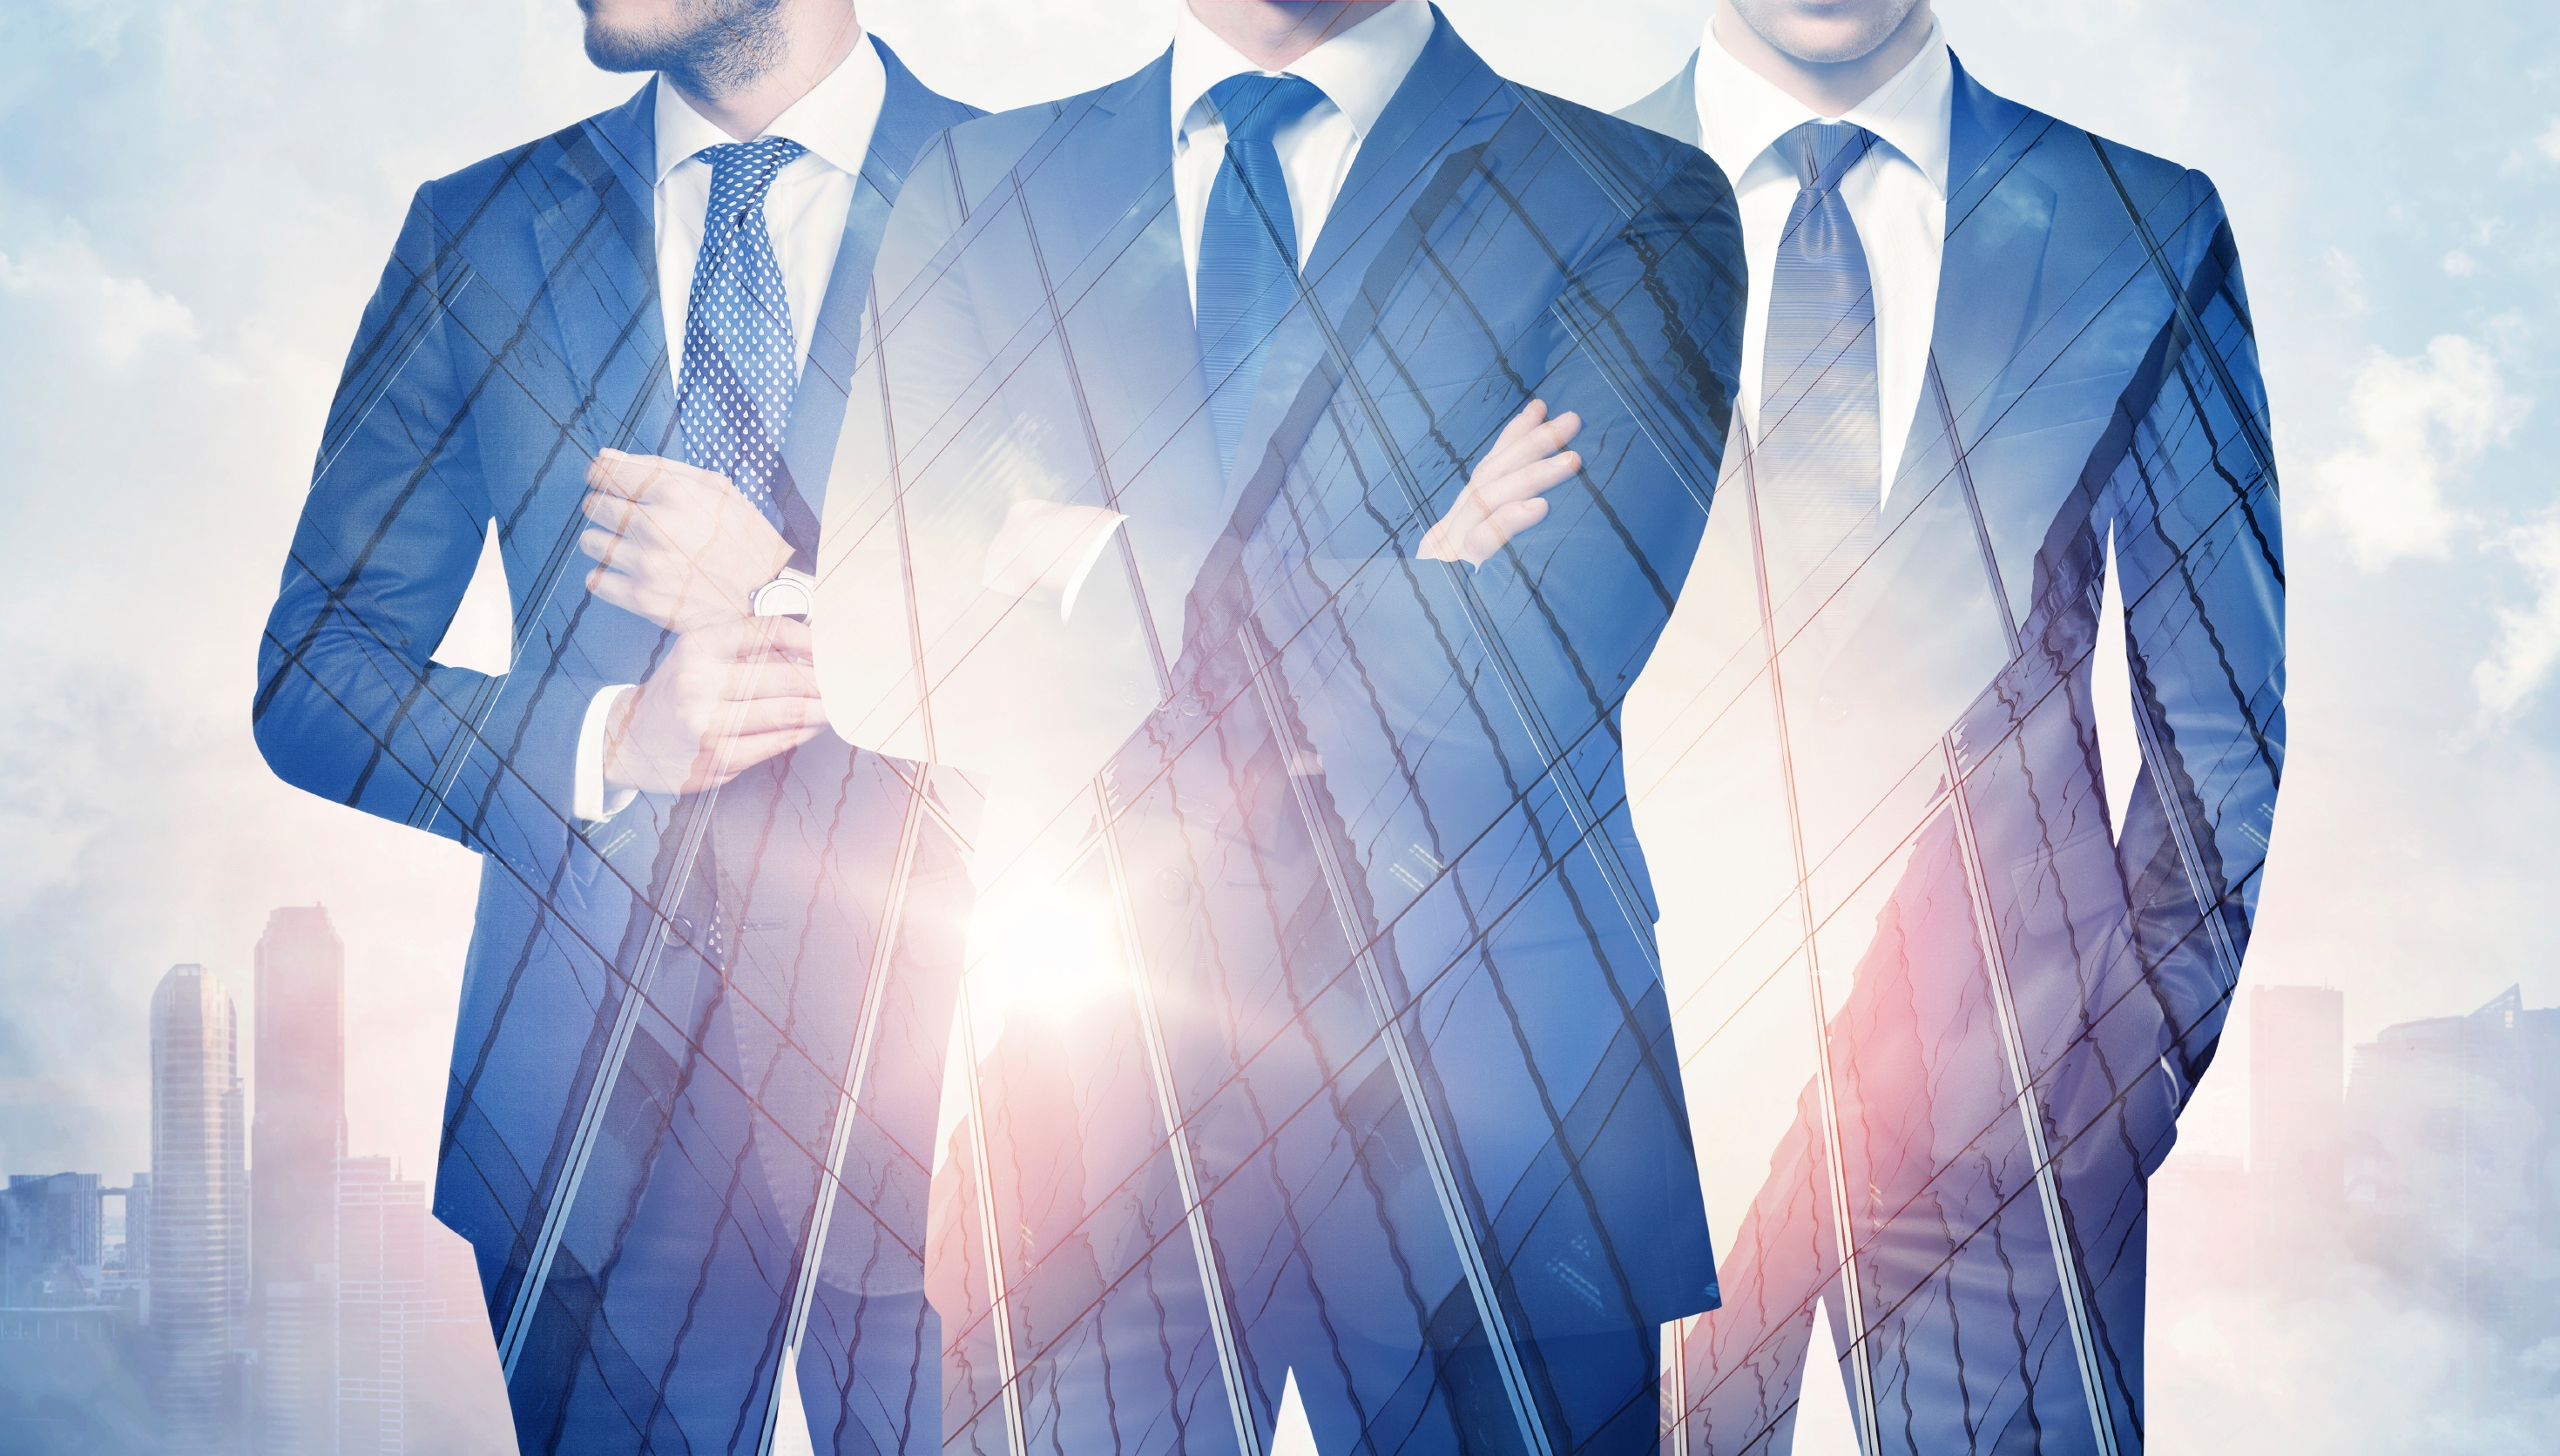 Double-exposure-of-businessmen-and-skyscraper-on-megalopolis-background-000057535954_Large.jpg